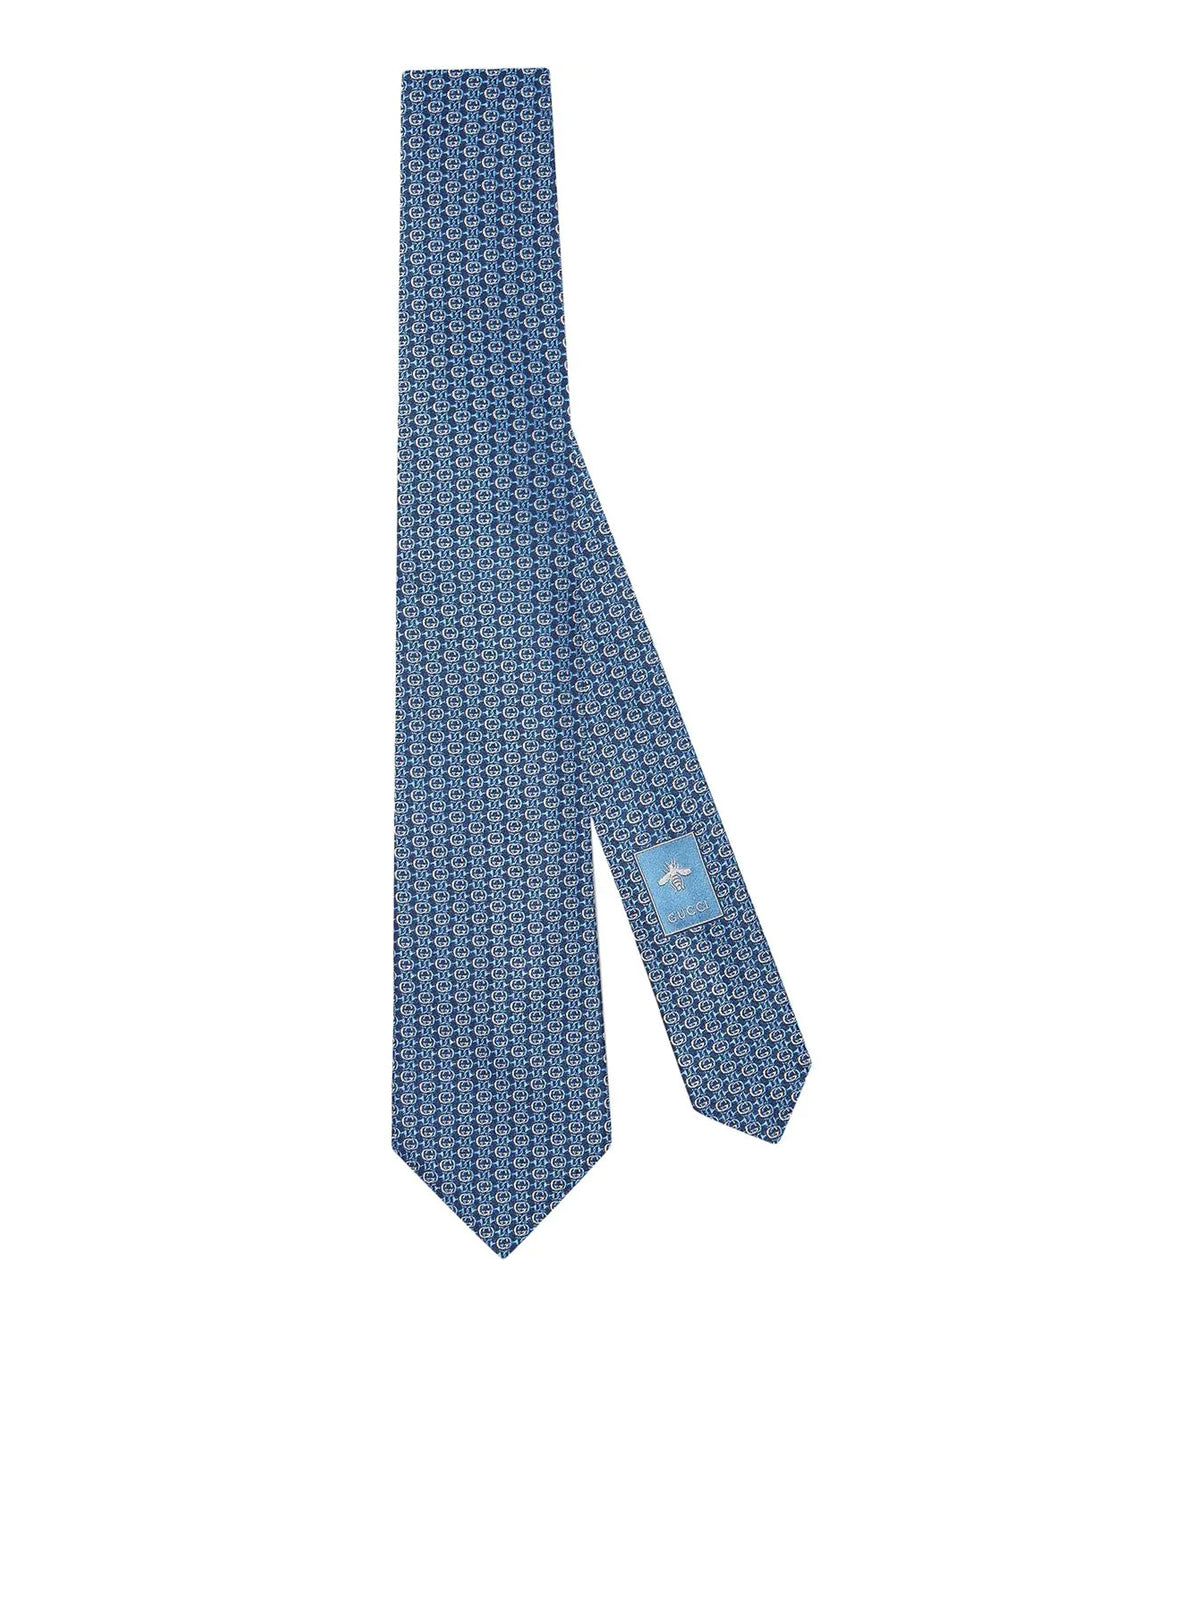 Interlocking G Horsebit necktie